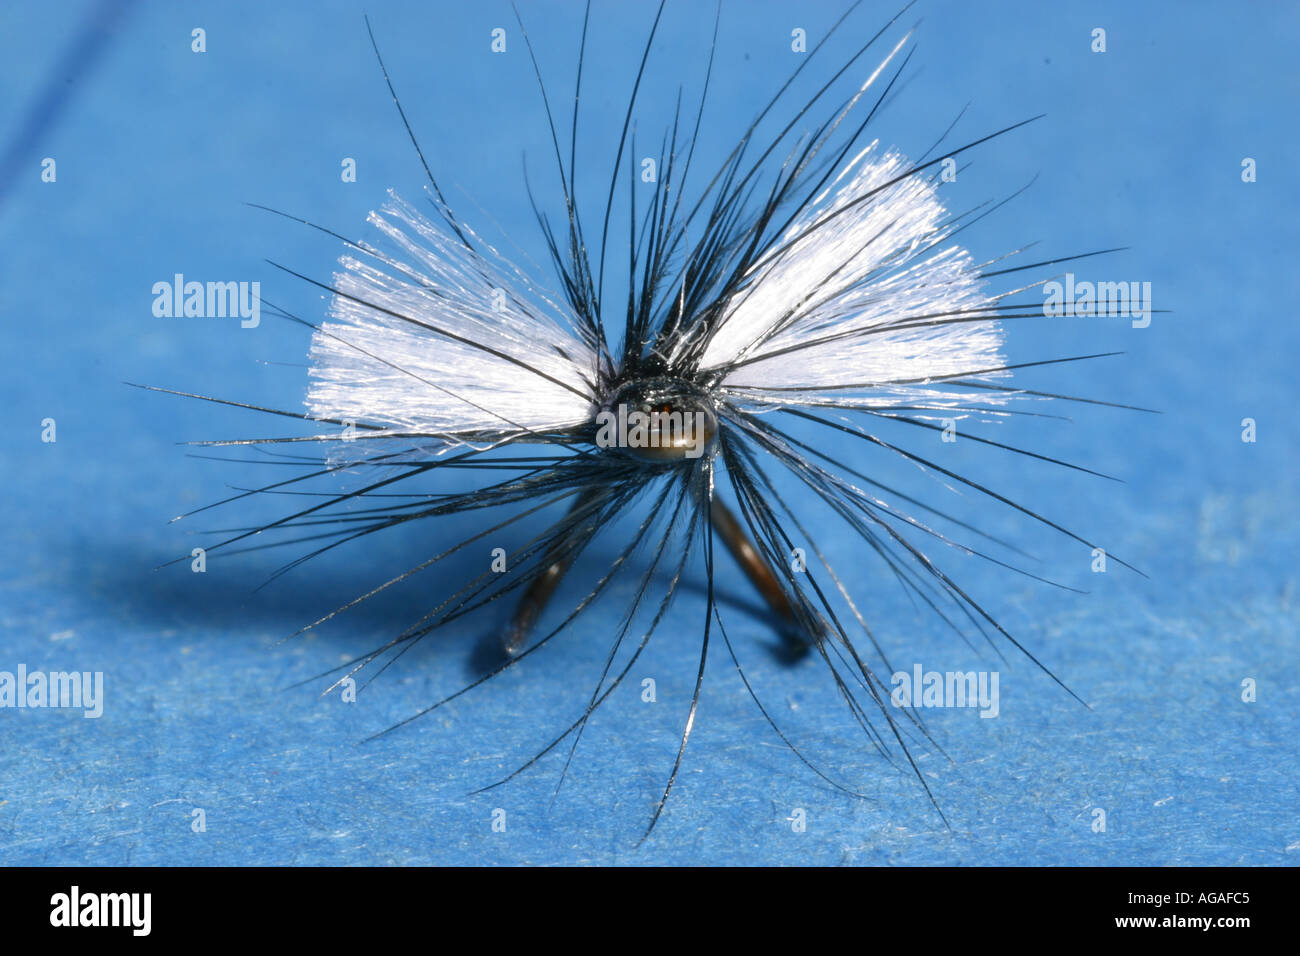 fishing fly fly fishing tying lure bait fish artificial Stock Photo